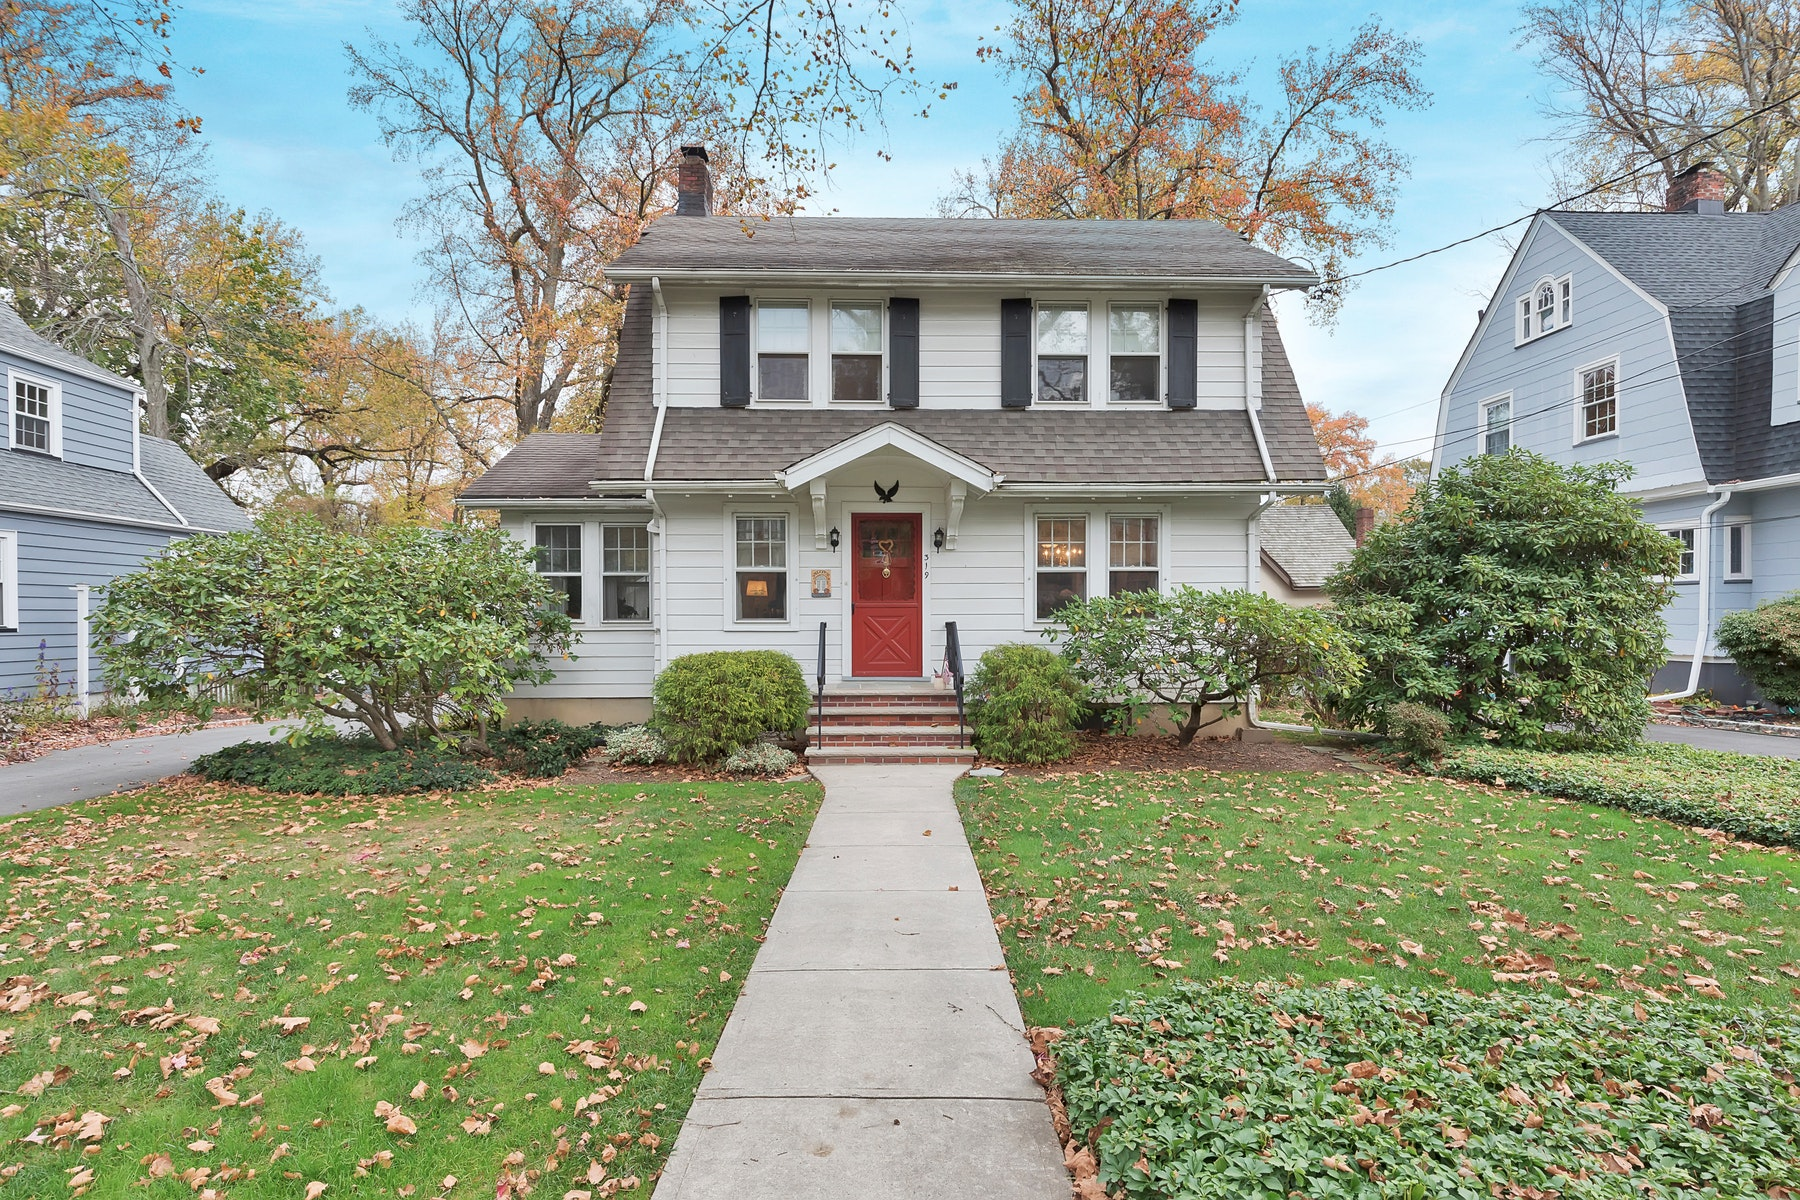 Single Family Homes for Sale at Live Traditional 319 Scotch Plains Ave Westfield, New Jersey 07090 United States